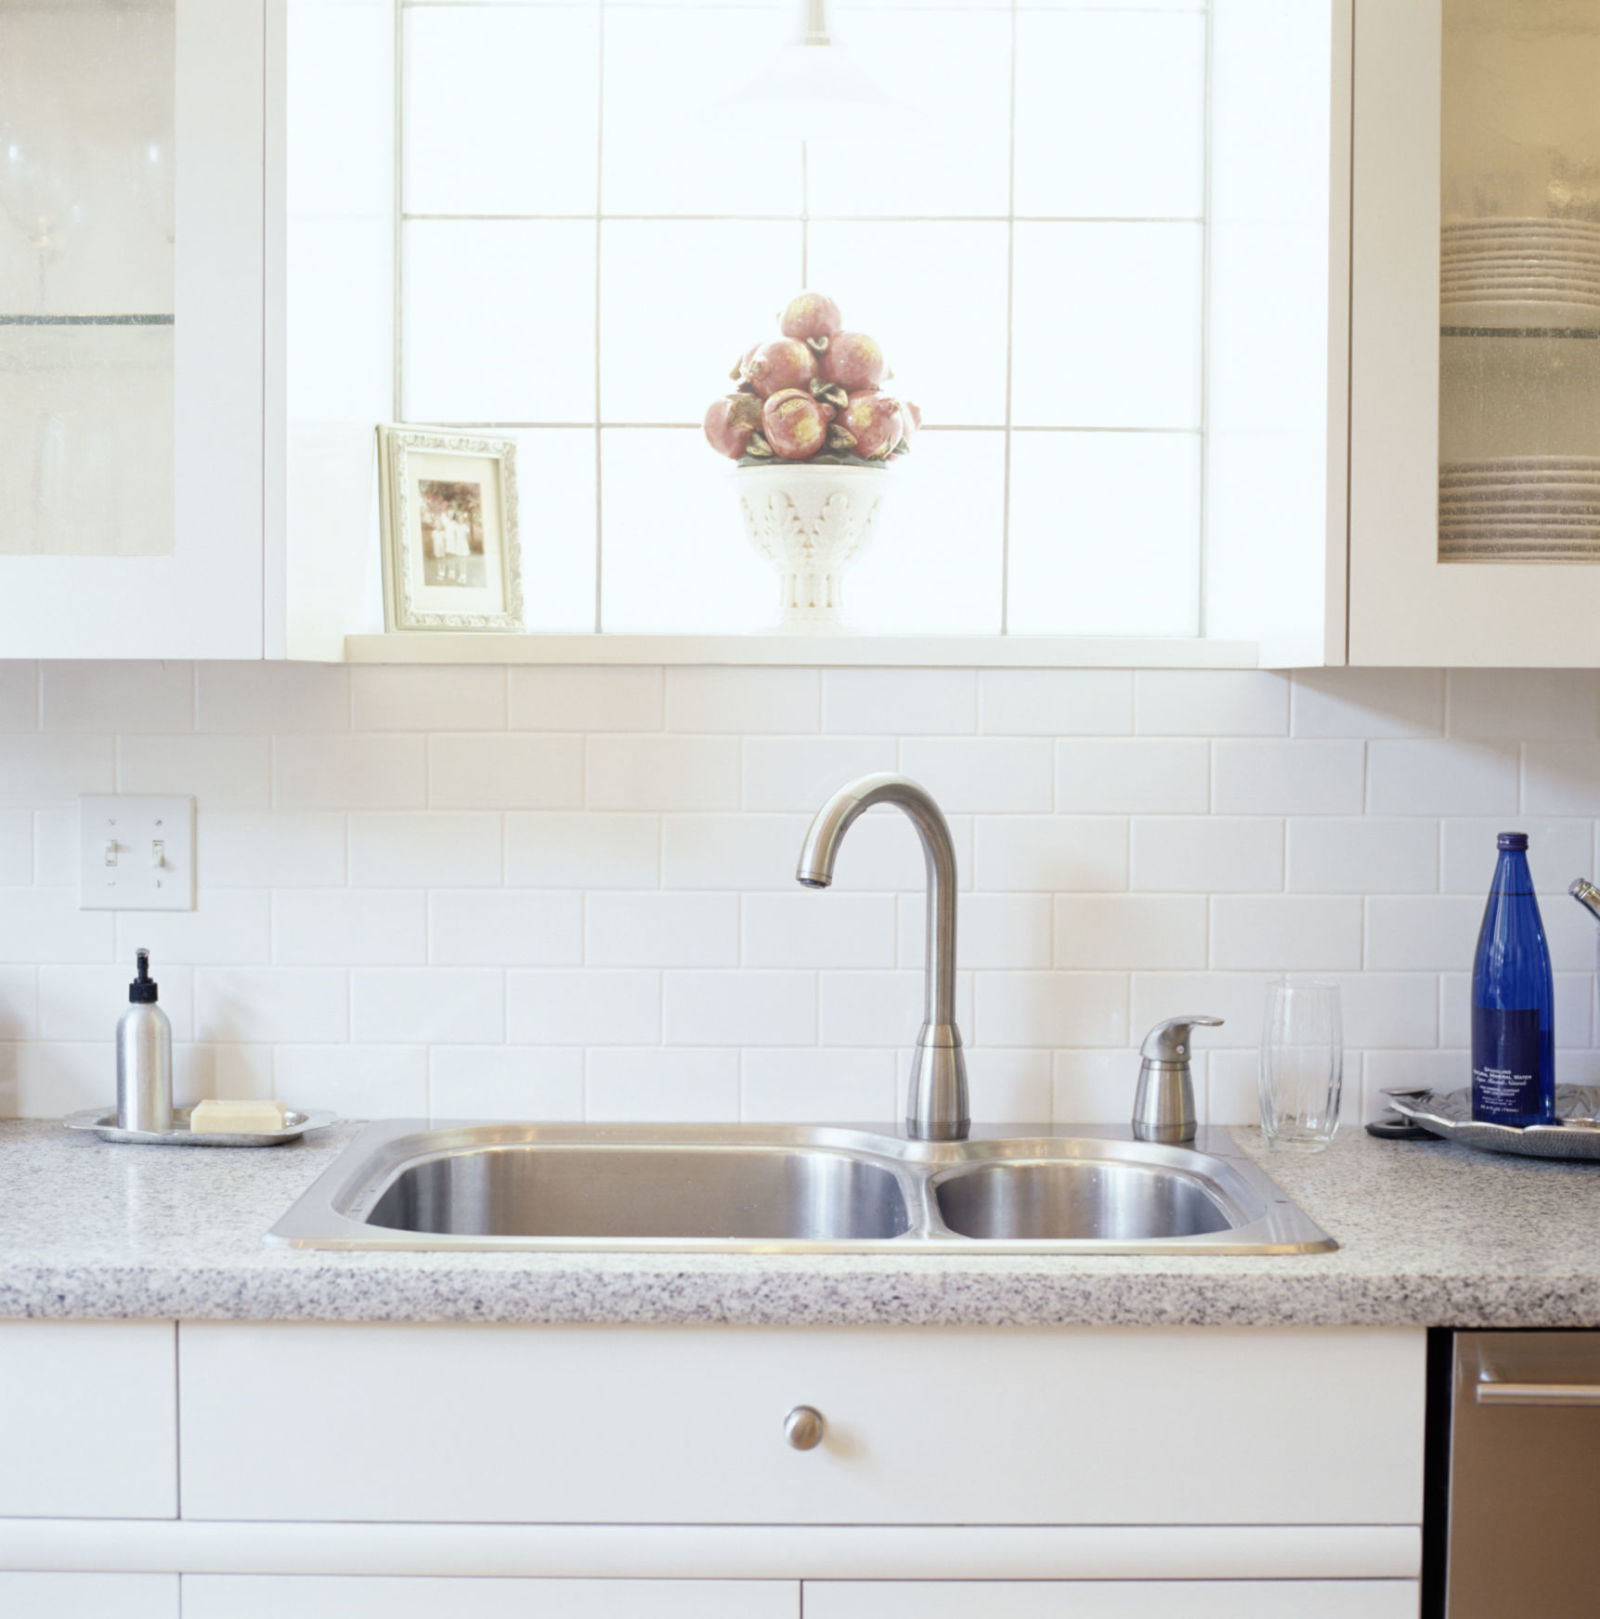 Kitchen Cleaning: Kitchen Cleaning Tips